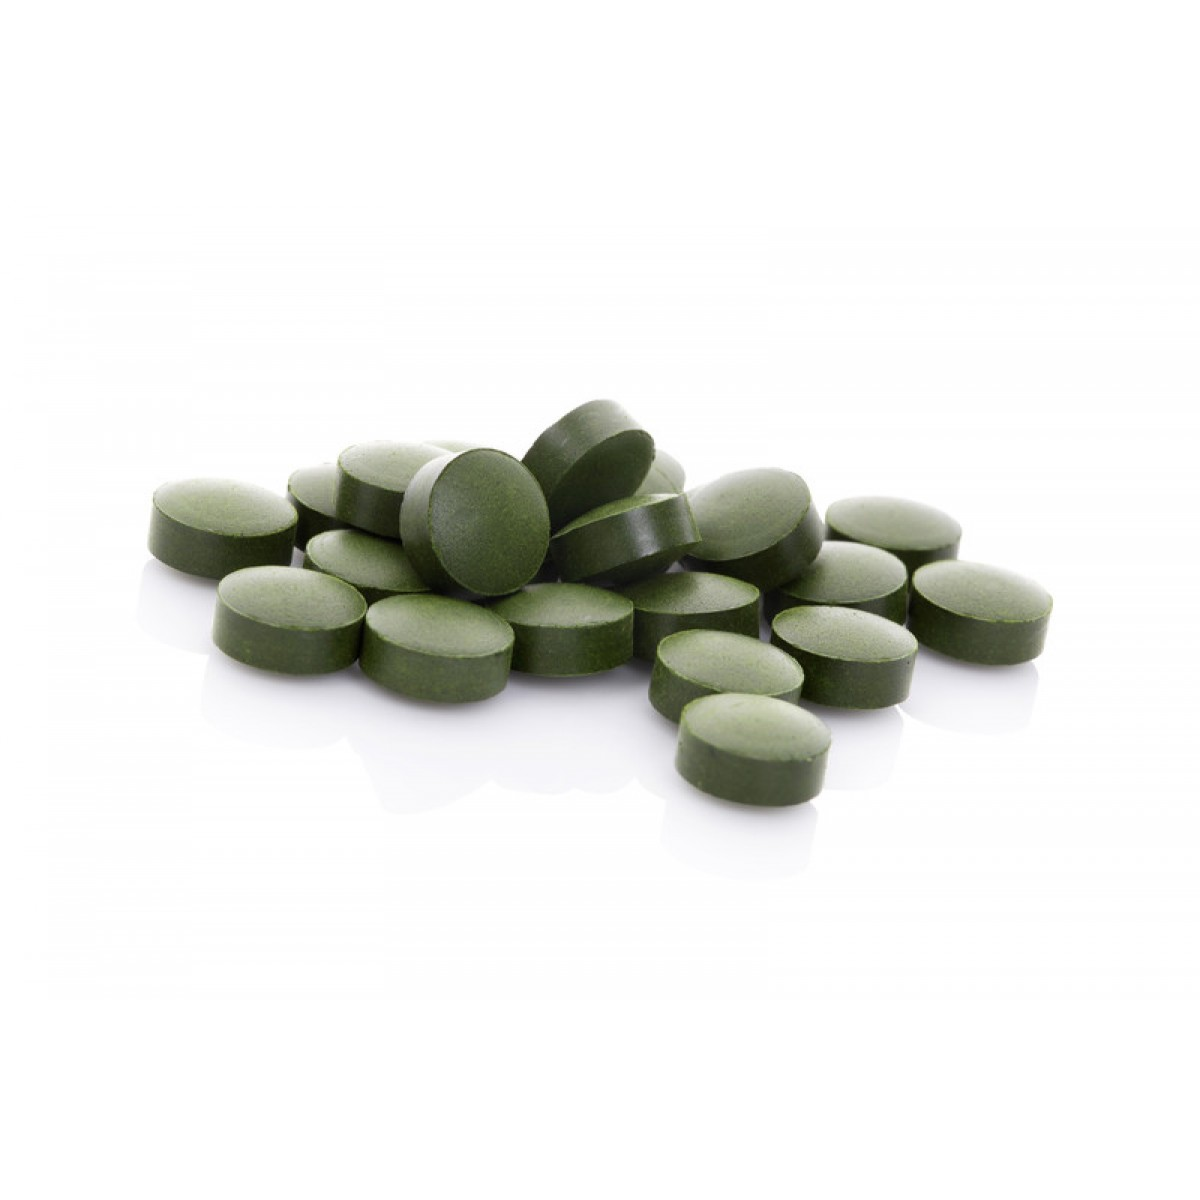 Chlorella Tablets 500mg 250 Tablets Broken Cell Wall